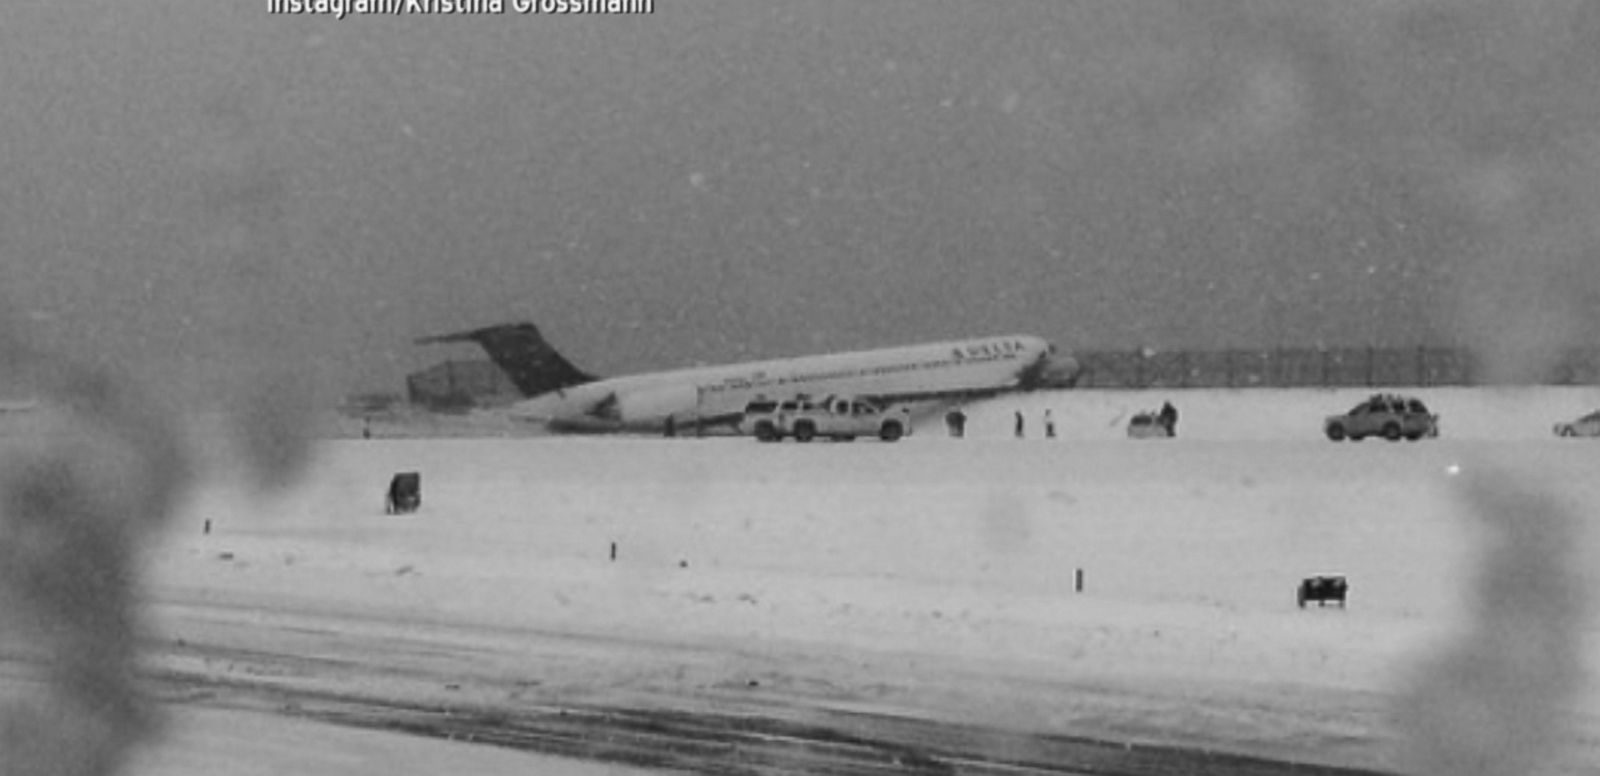 VIDEO: The aircraft crashed into a fence during winter weather conditions.